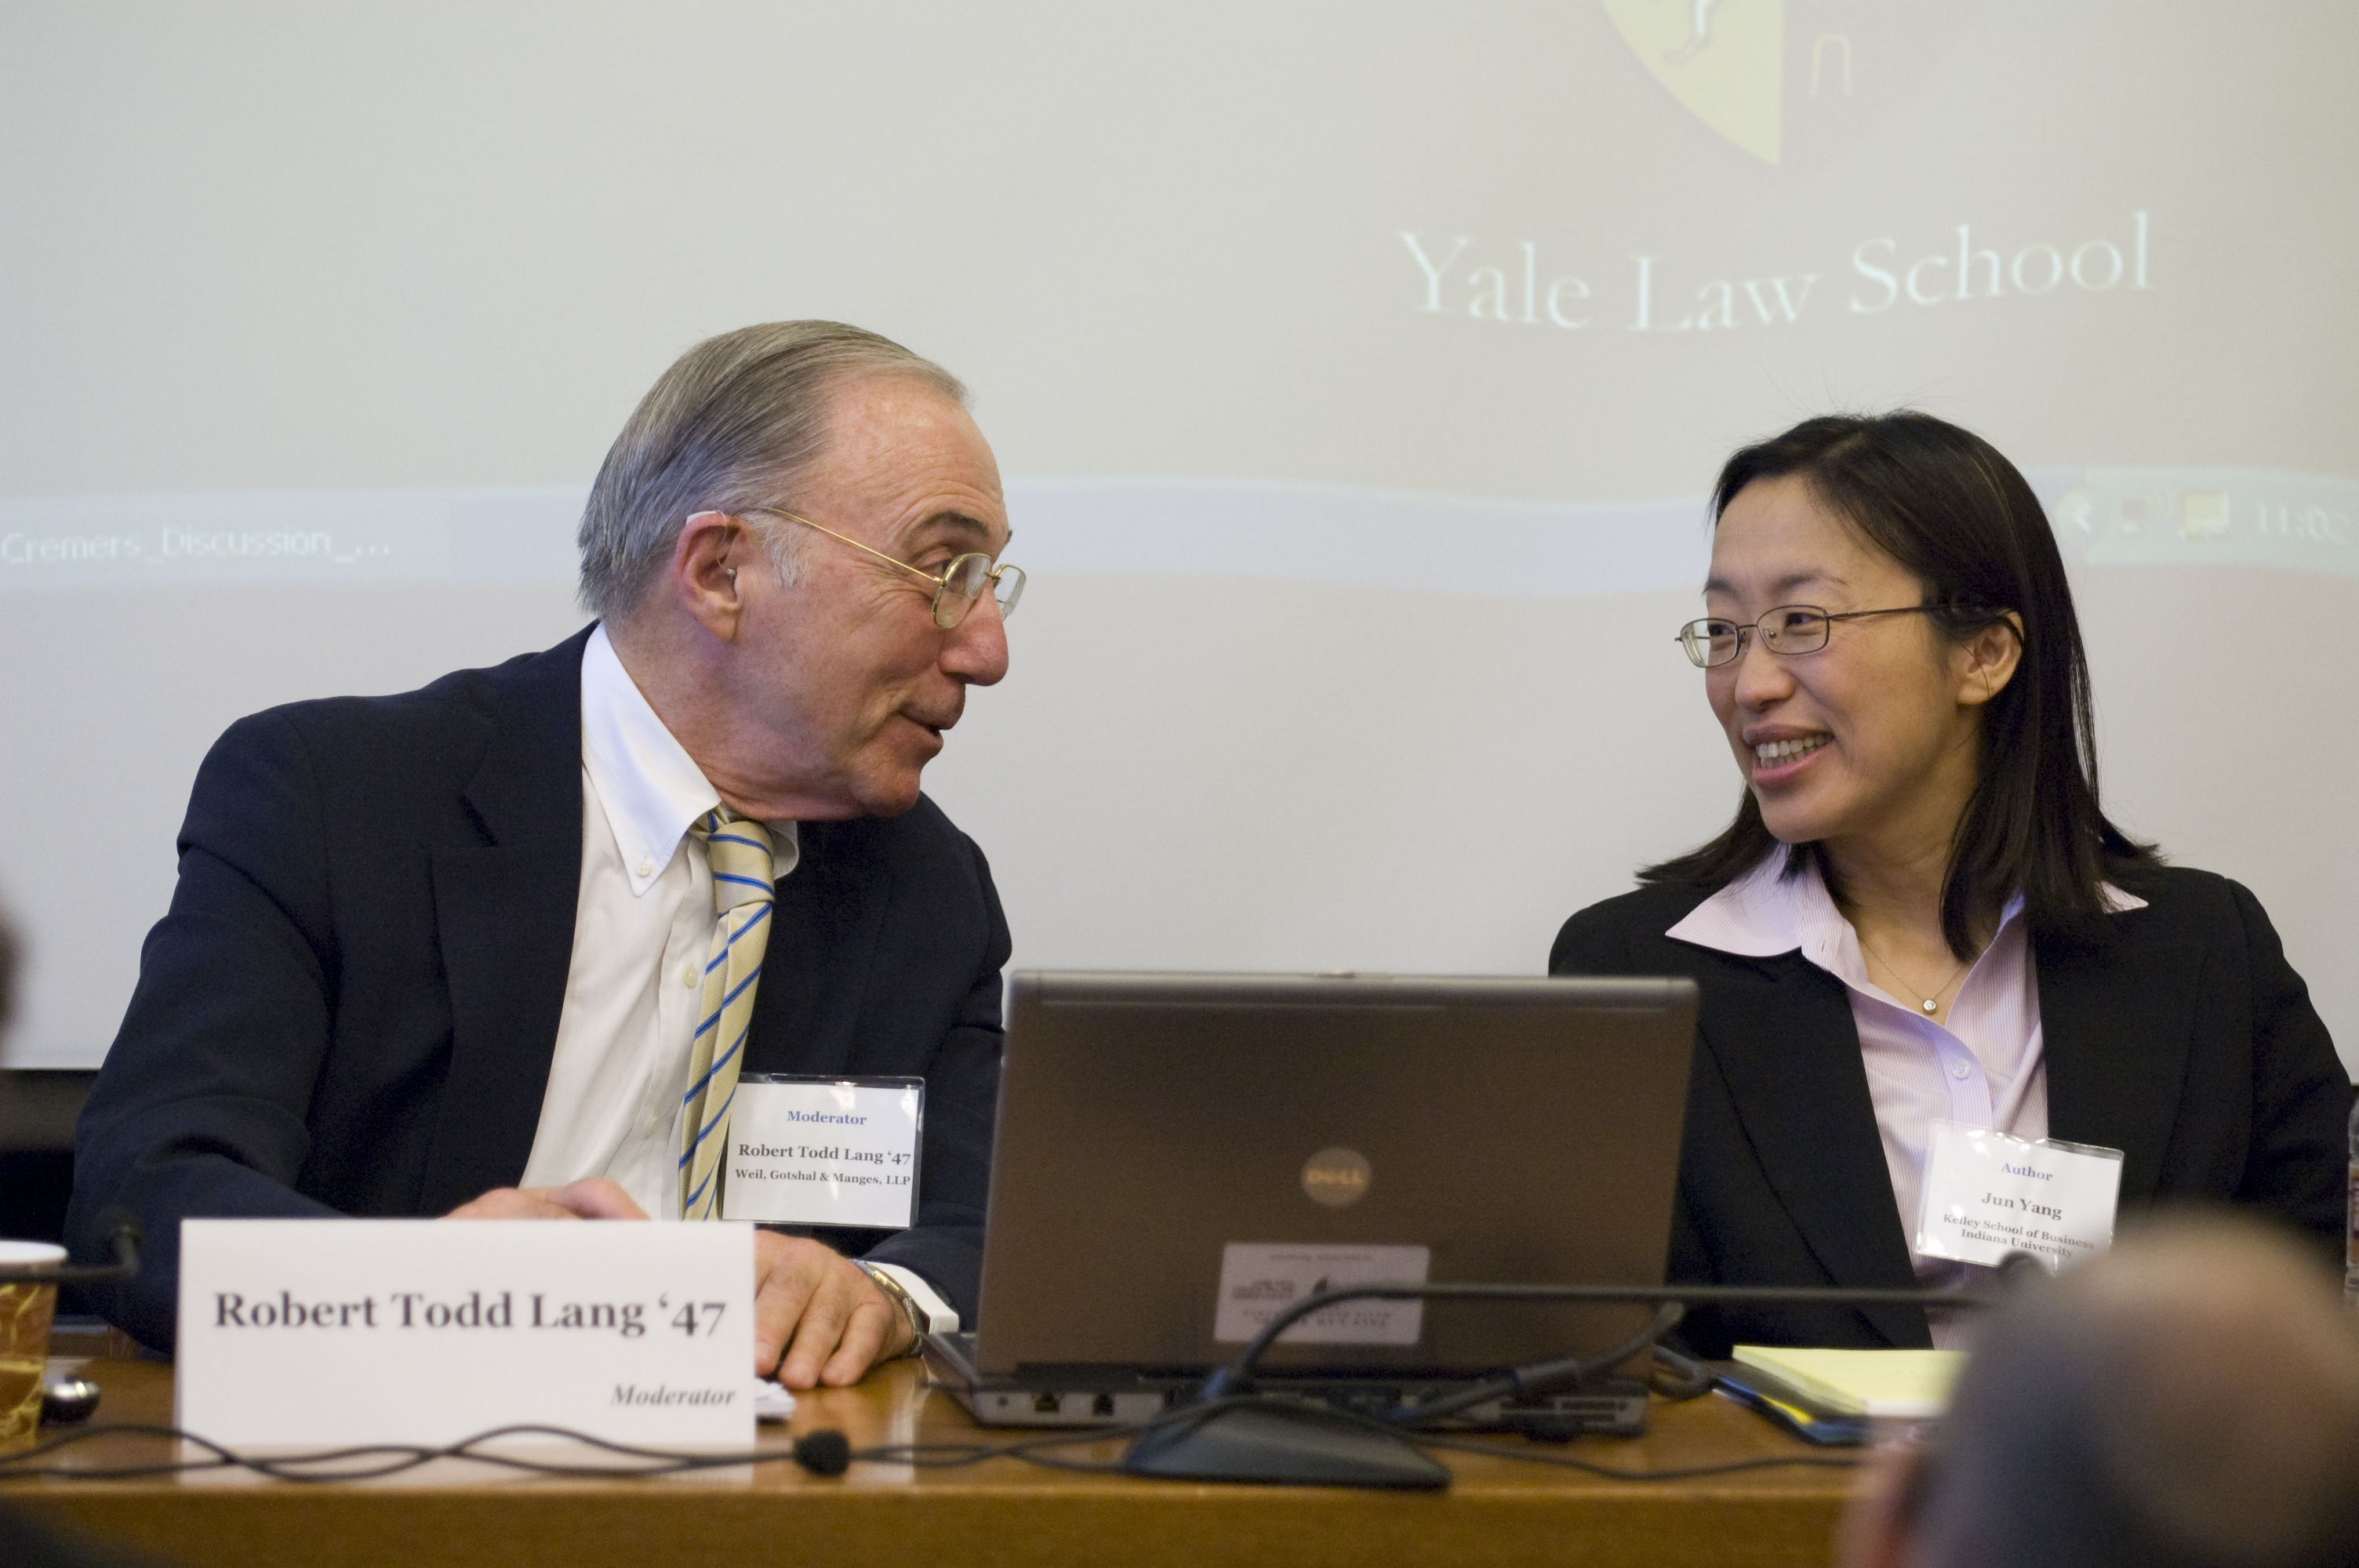 Robert Todd Lang '47 and Indiana Kelley School of Business Prof. Jun Yang